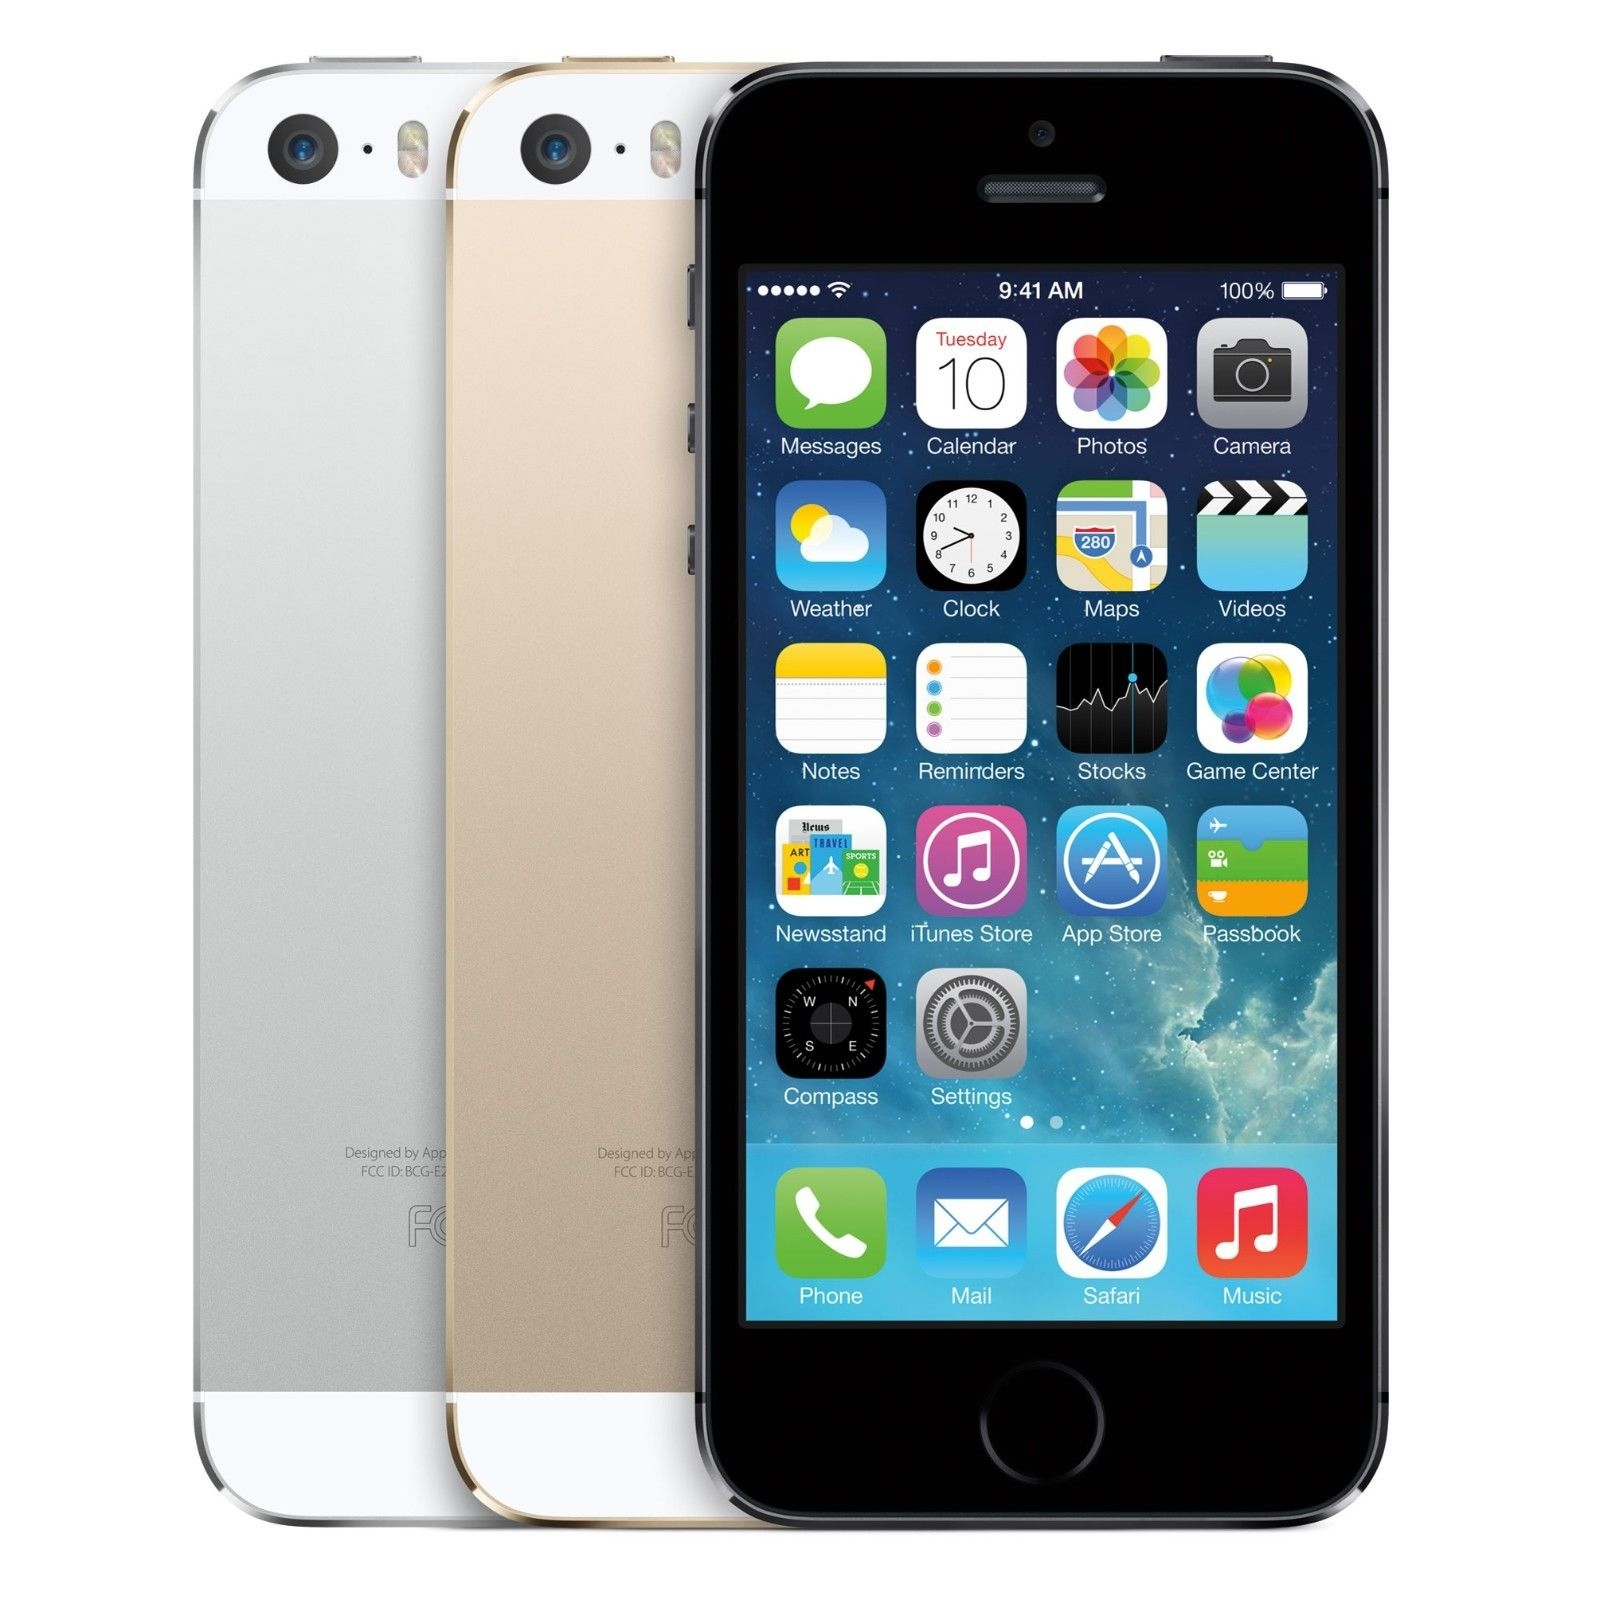 iPhone 5S 16GB Factory Unlocked Smartphone/iPad WiFi